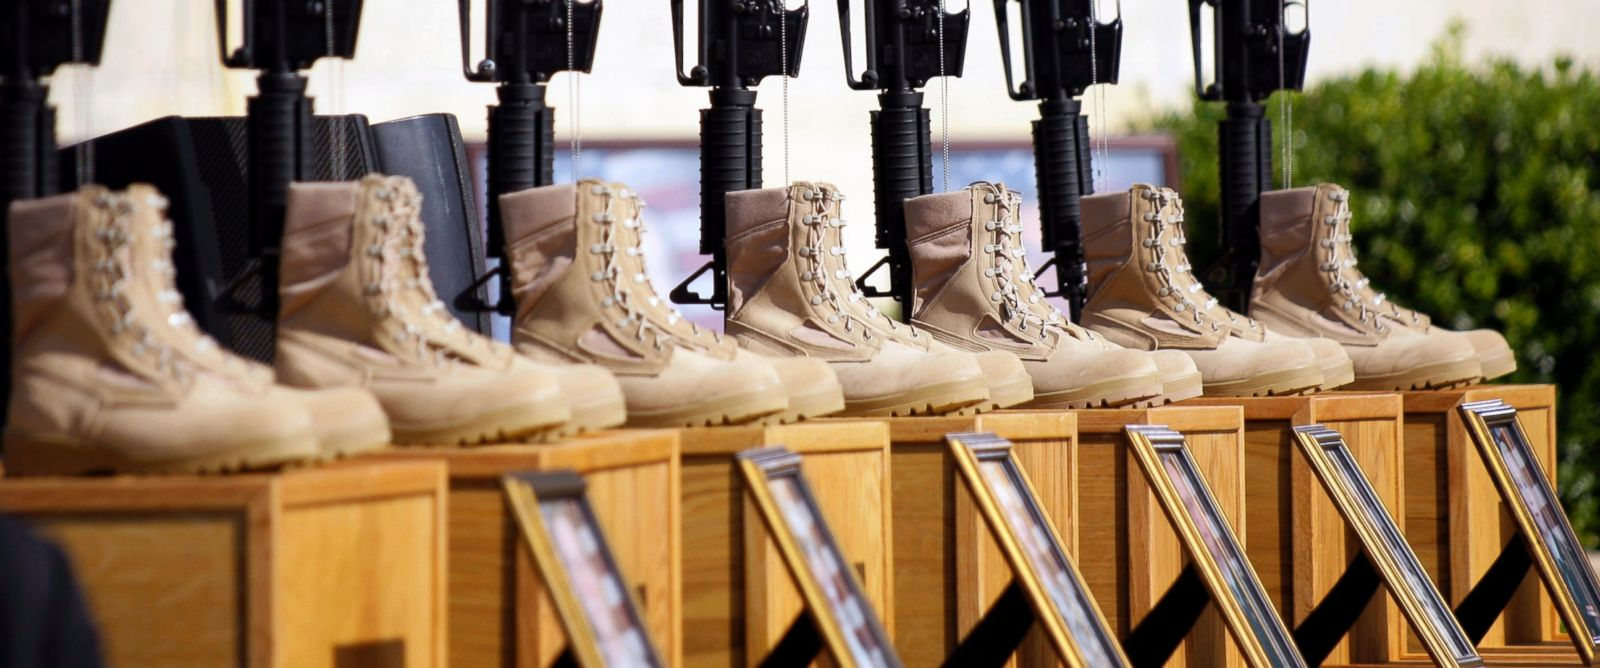 PHOTO: A memorial to victims of the Fort Hood shooting is shown before the start of a memorial service, Nov. 10, 2009, at Fort Hood, Texas.